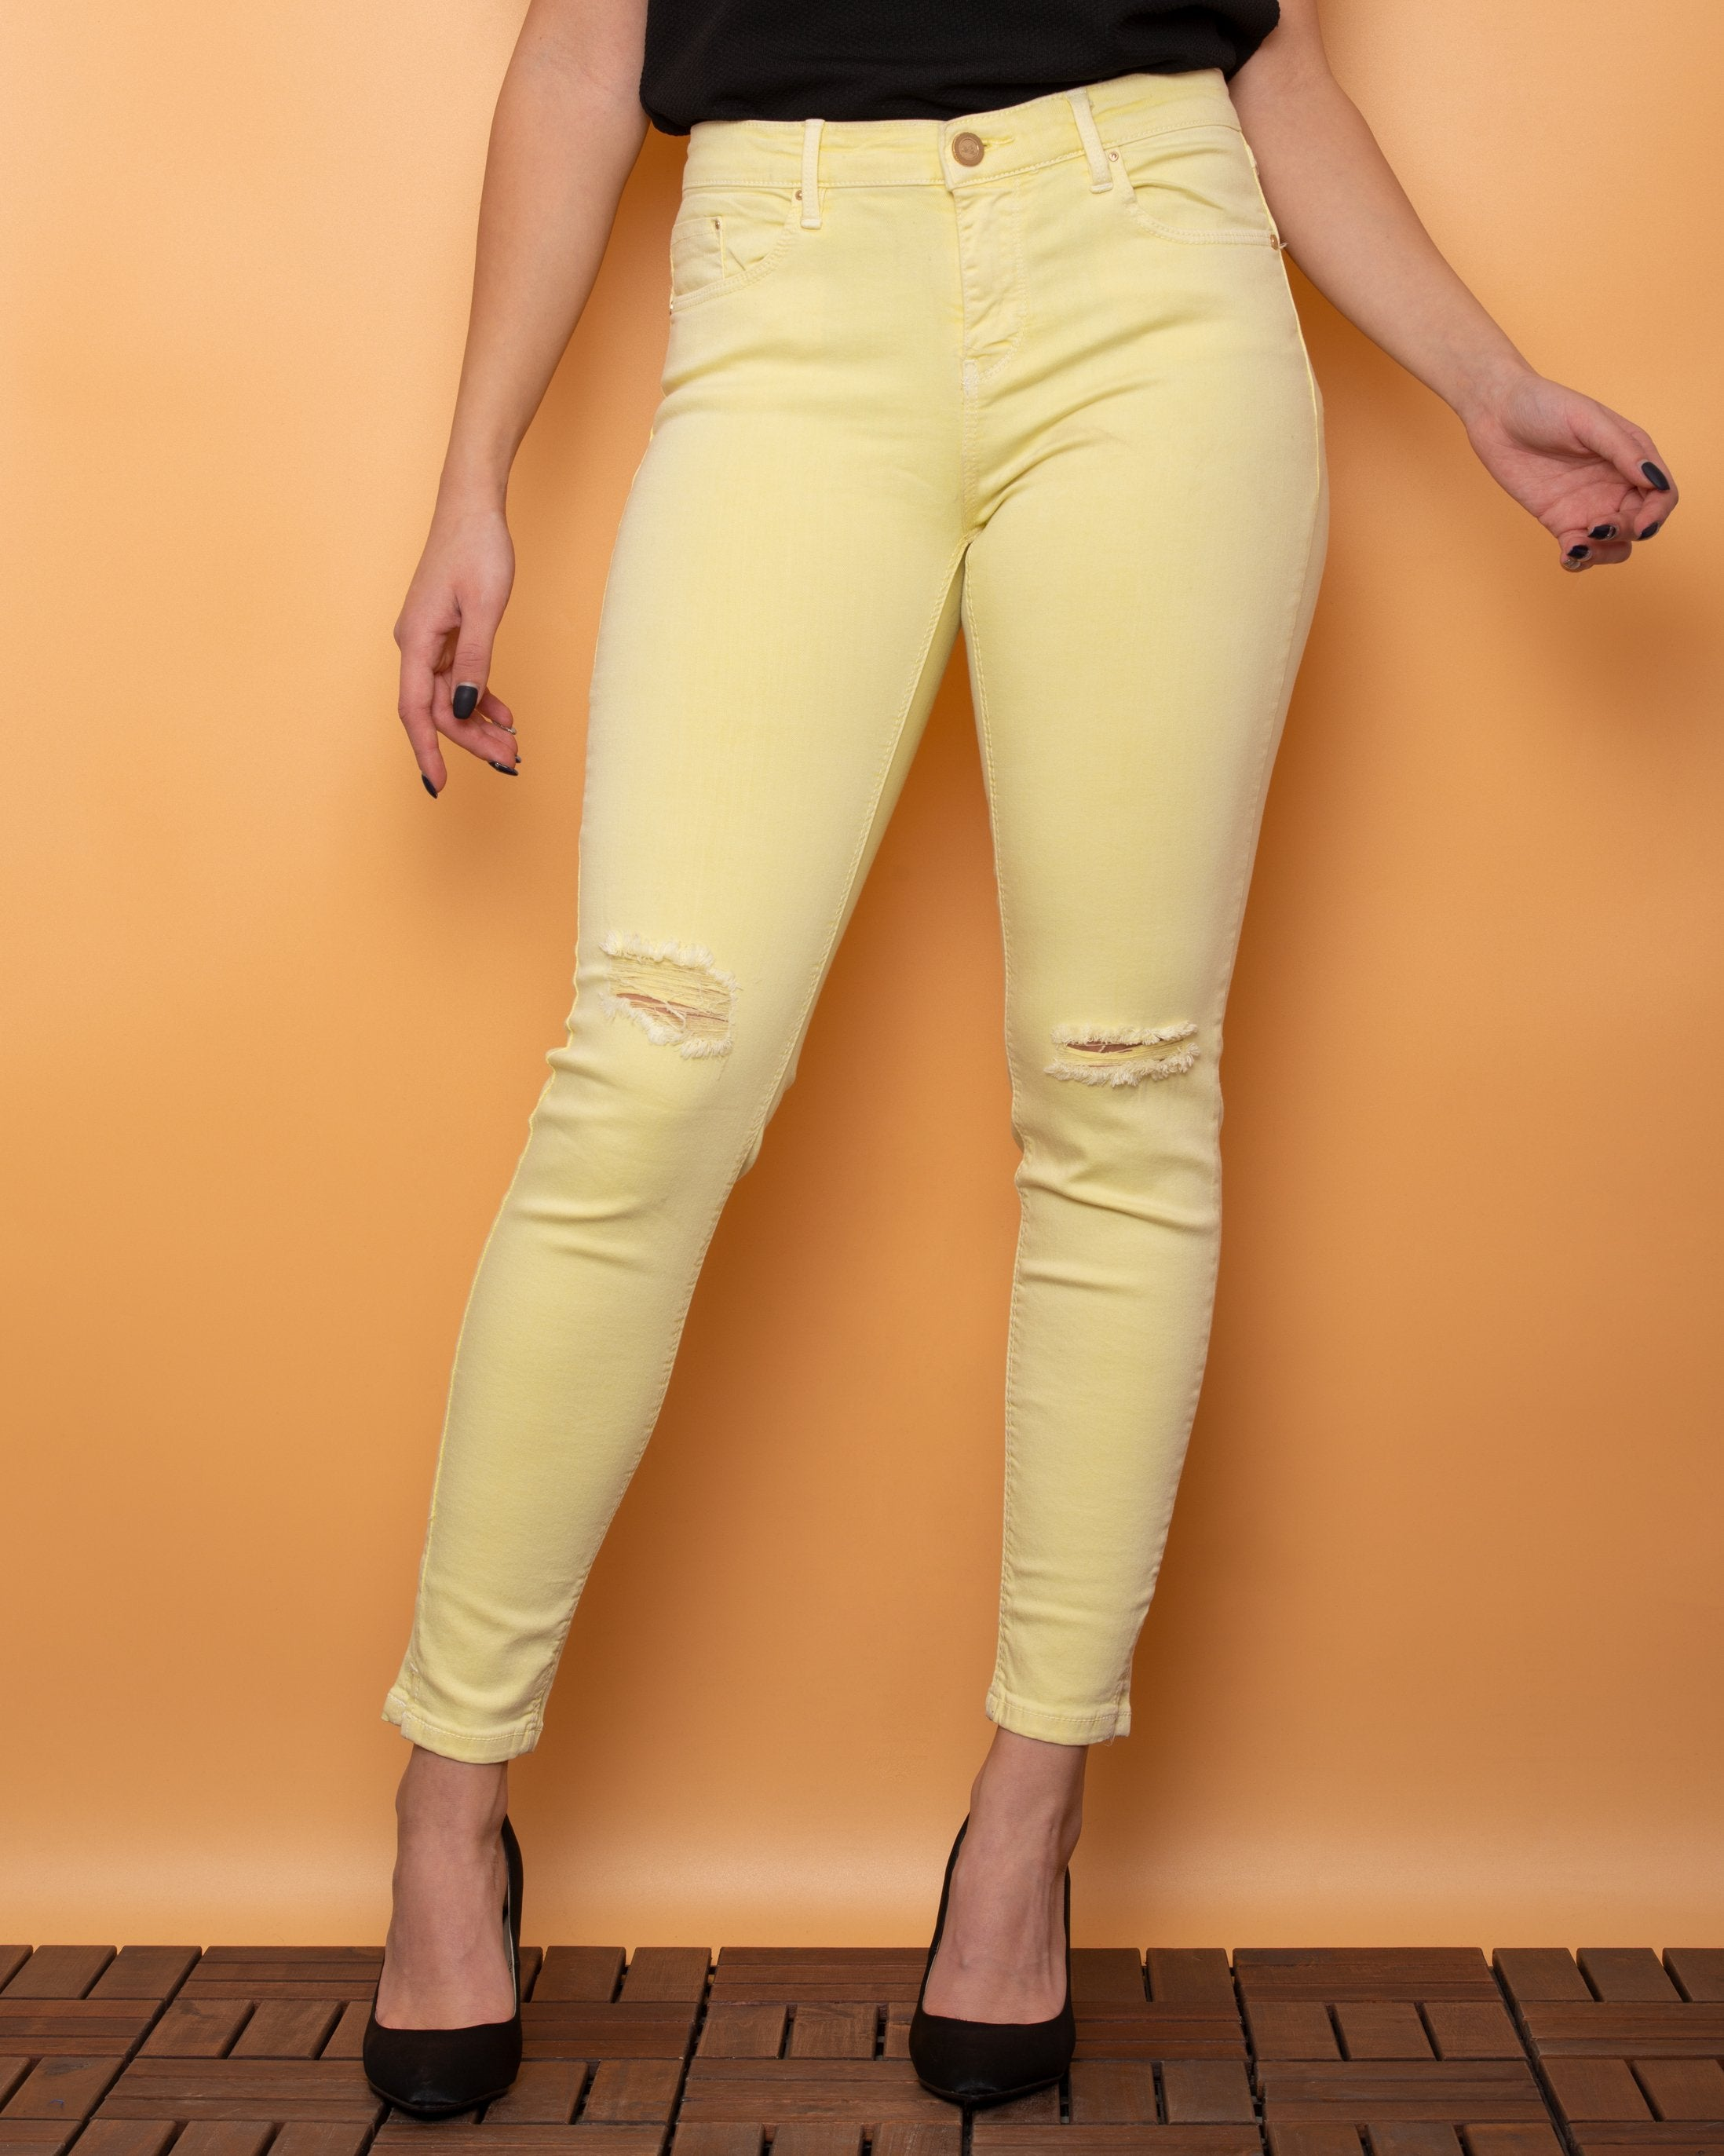 Stradivarius Jeans Skinny Leg Low Waist Yellow